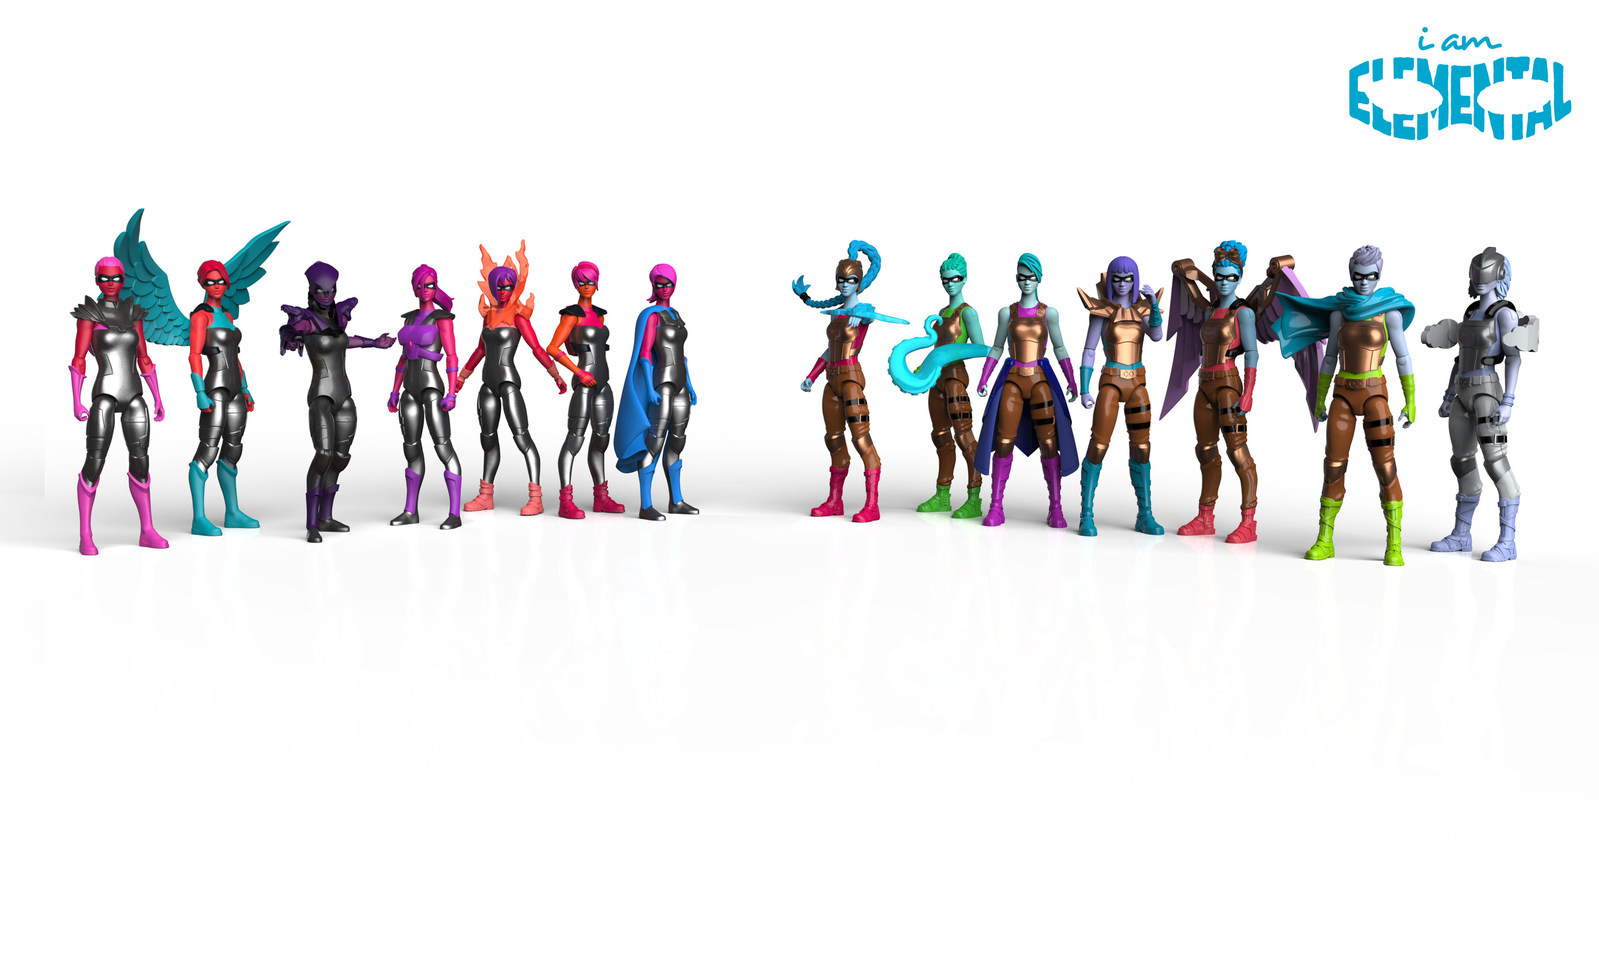 The Jim Henson Company to Develop Kids Series Based on IamElemental's Female Action Figures